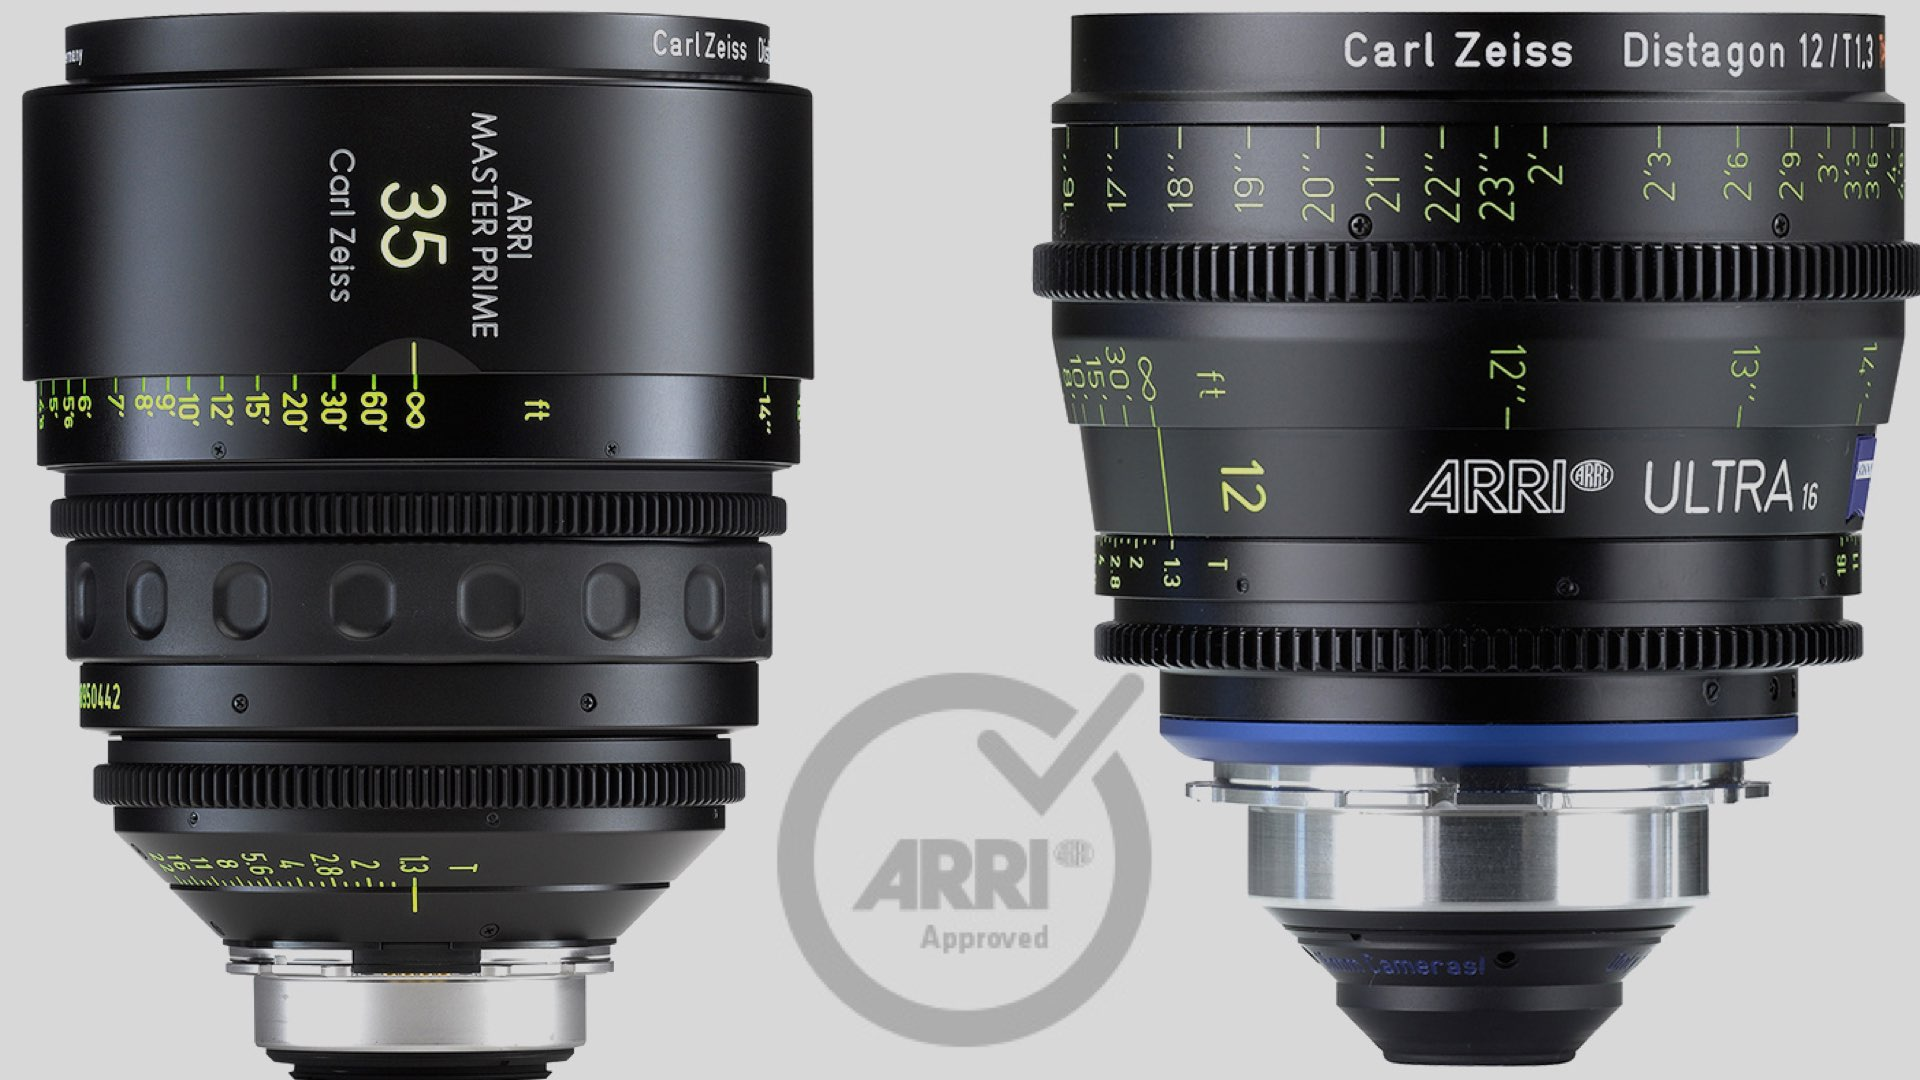 ARRI Approved Certified Pre-Owned Program is Expanding With More